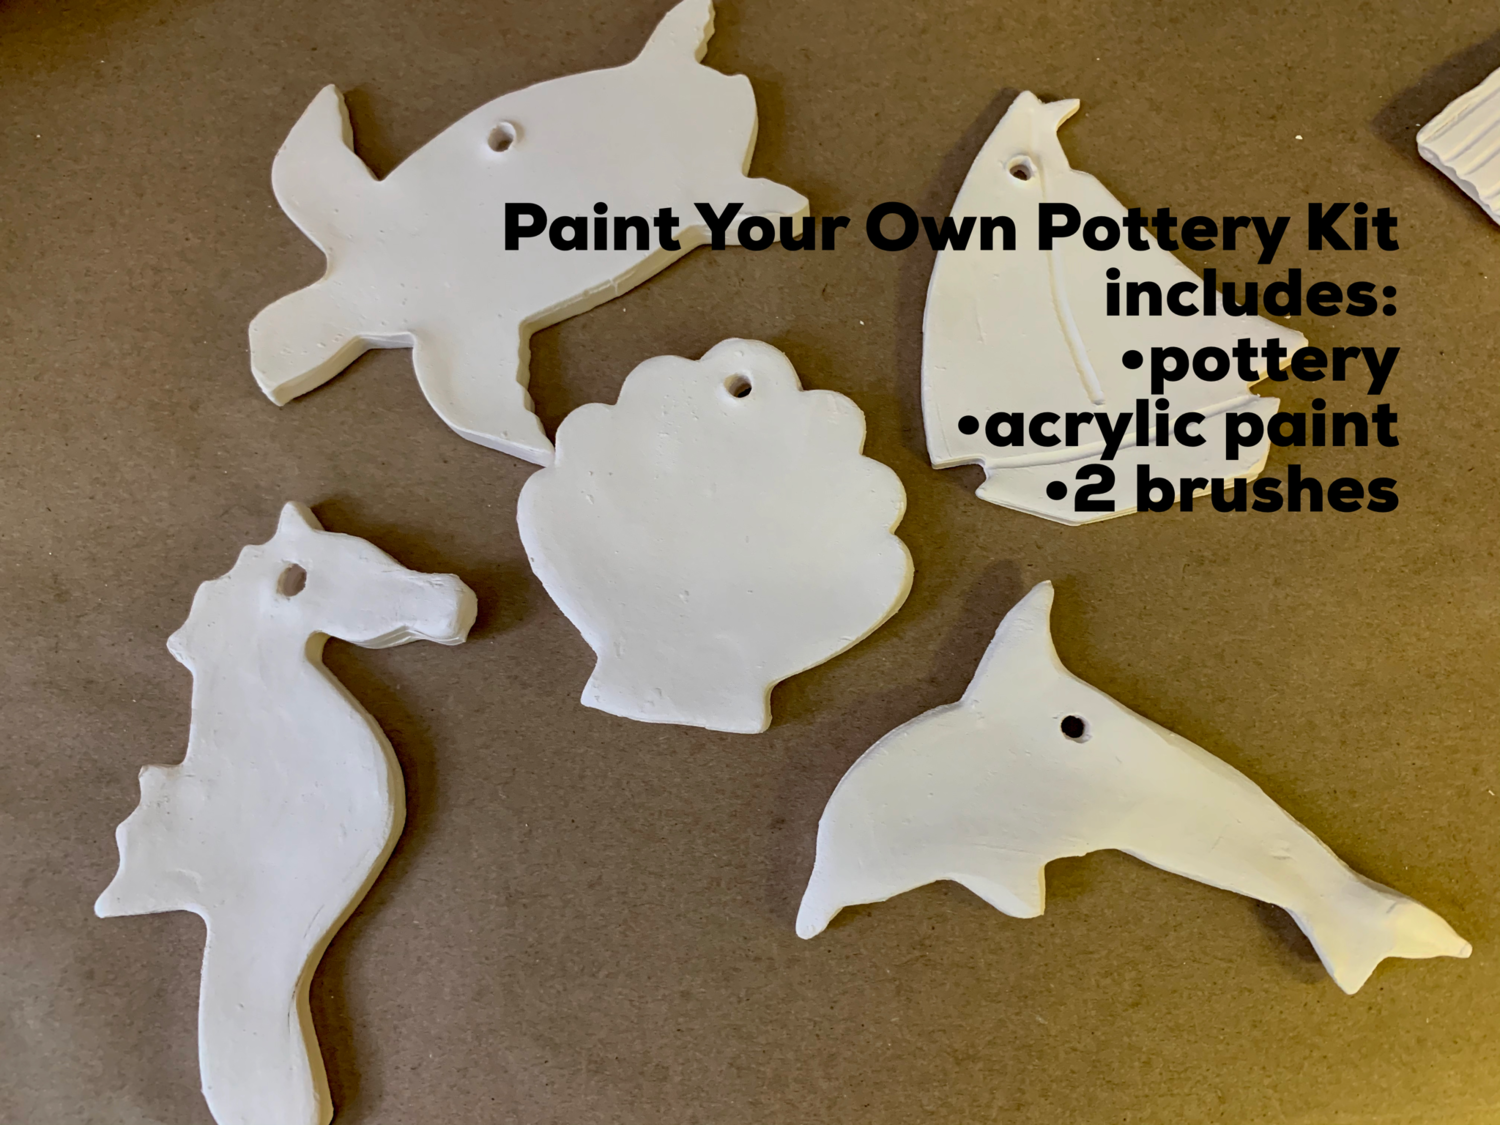 NO FIRE Paint Your Own Pottery Kit -  Ceramic Set of 5 Ocean Christmas Ornaments - Turtle, Seahorse, Dolphin, Sailboat, Scallop Shell - Acrylic Paint Kit